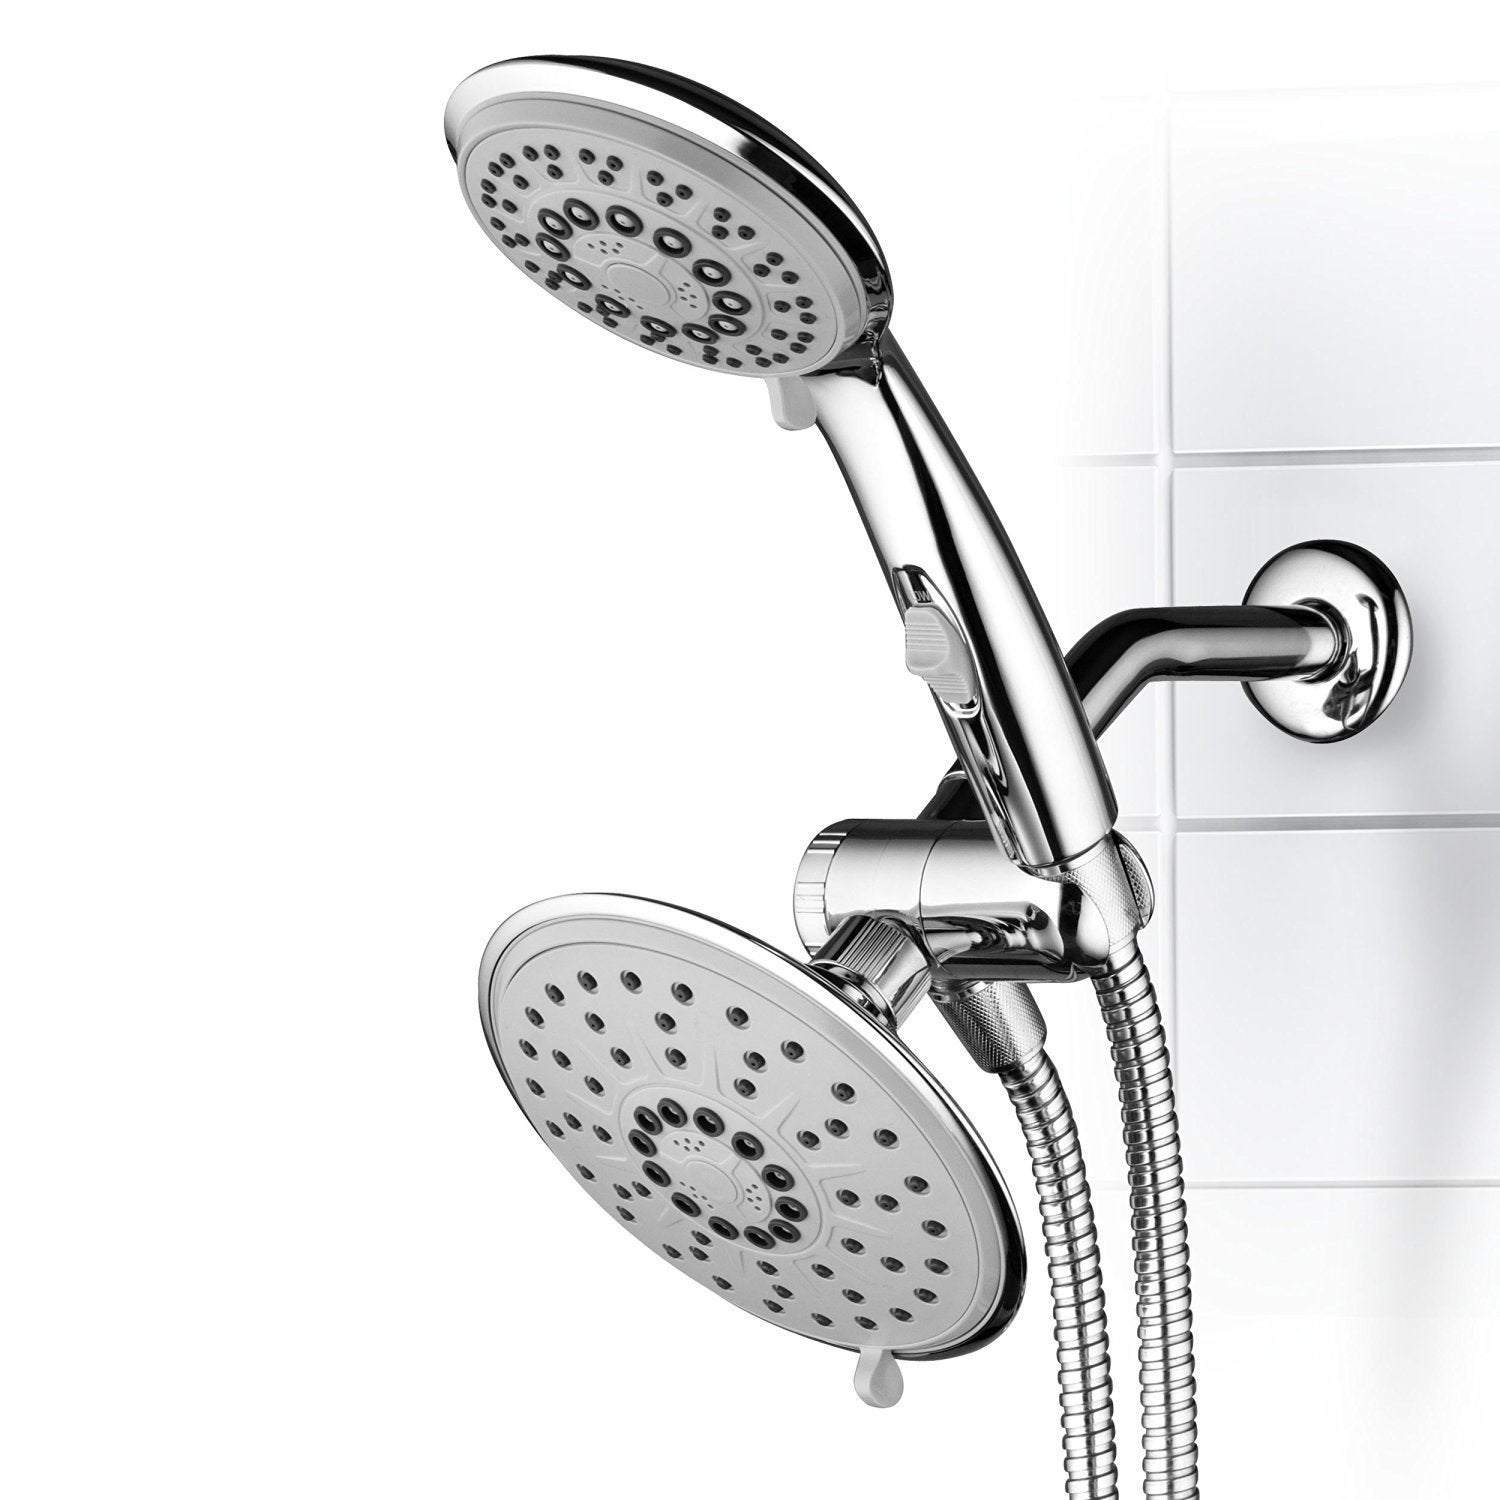 Interlink Hydroluxe 30-Setting 3-Way Rainfall Shower Head...